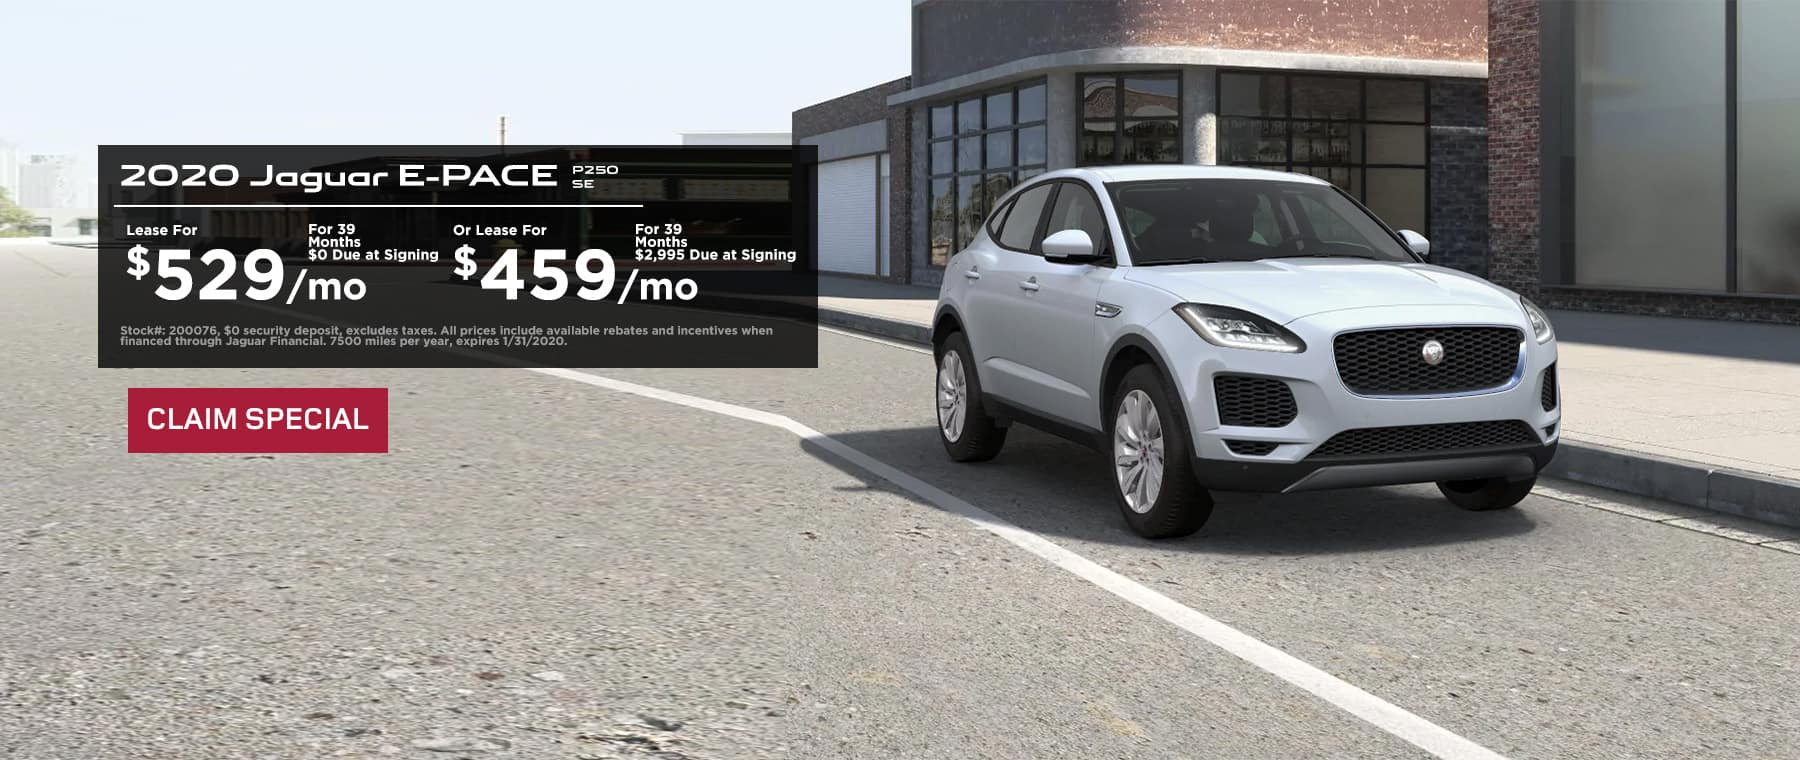 E-PACE Special